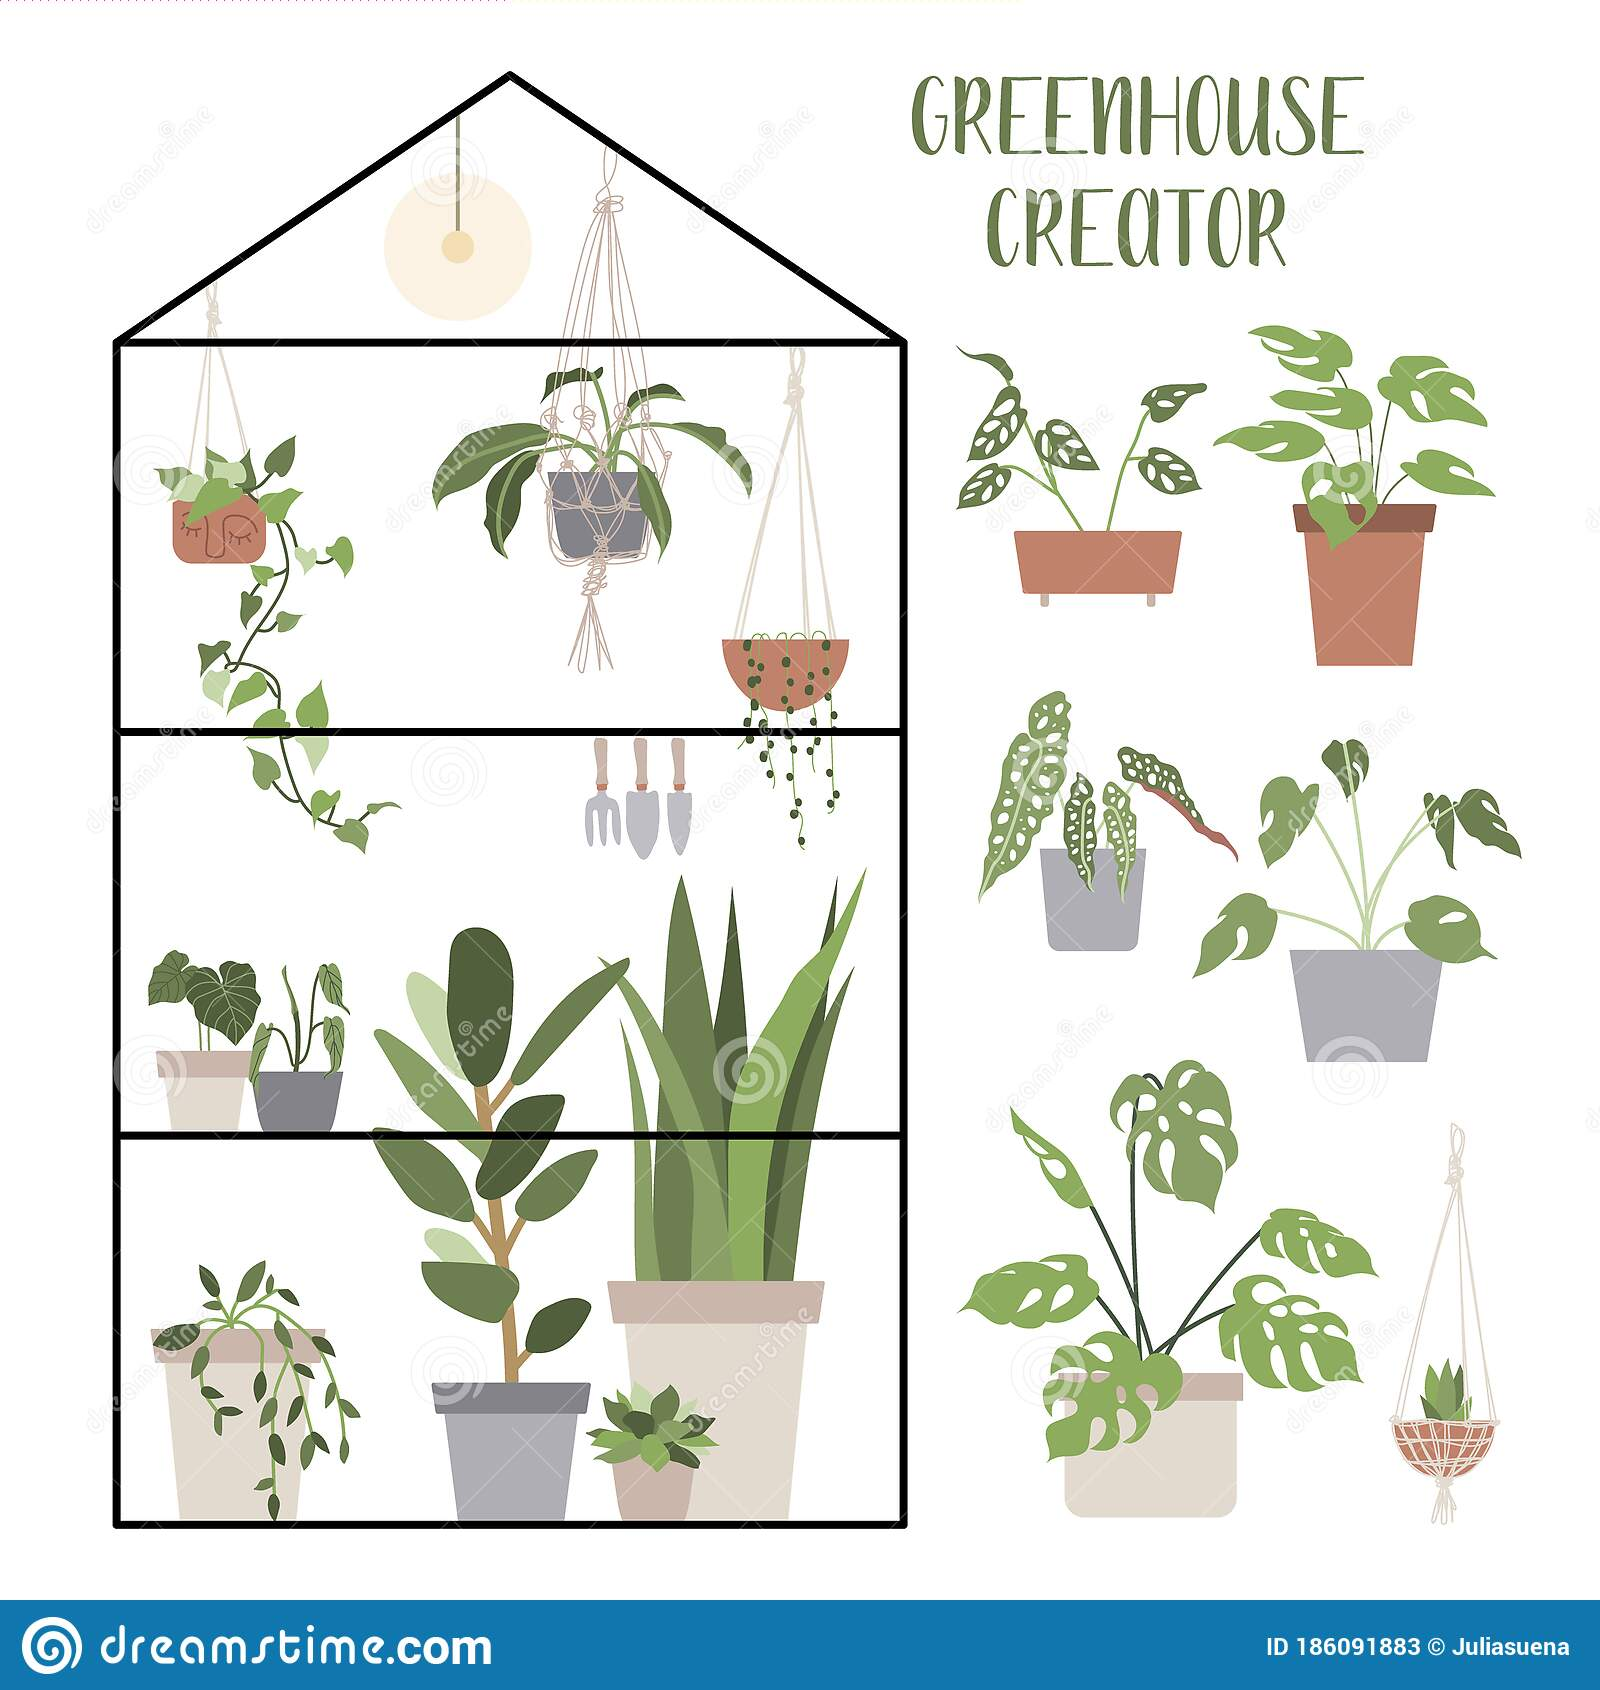 Greenhouse Creator Set With House Plants And Pots Concept Of Botanical Garden Home Gardening Stock Vector Illustration Of Friendly Garden 186091883